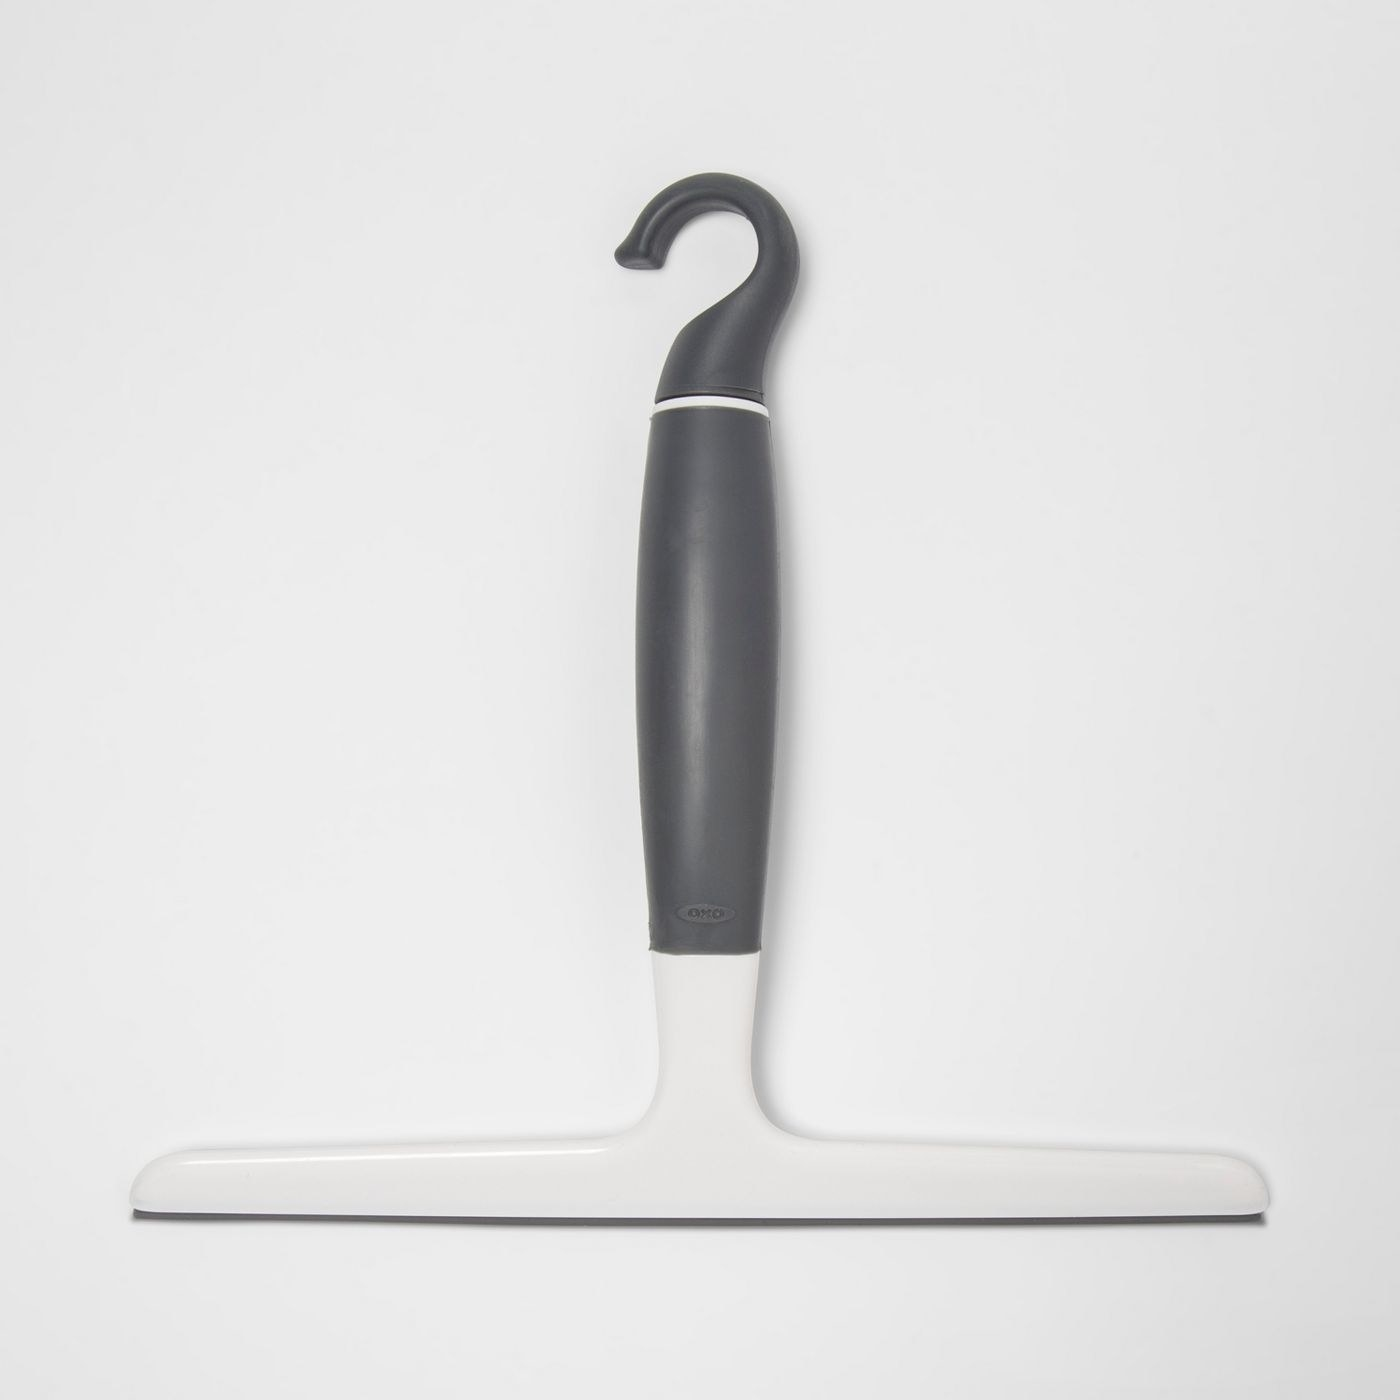 rubber squeegee with gray handle and white head